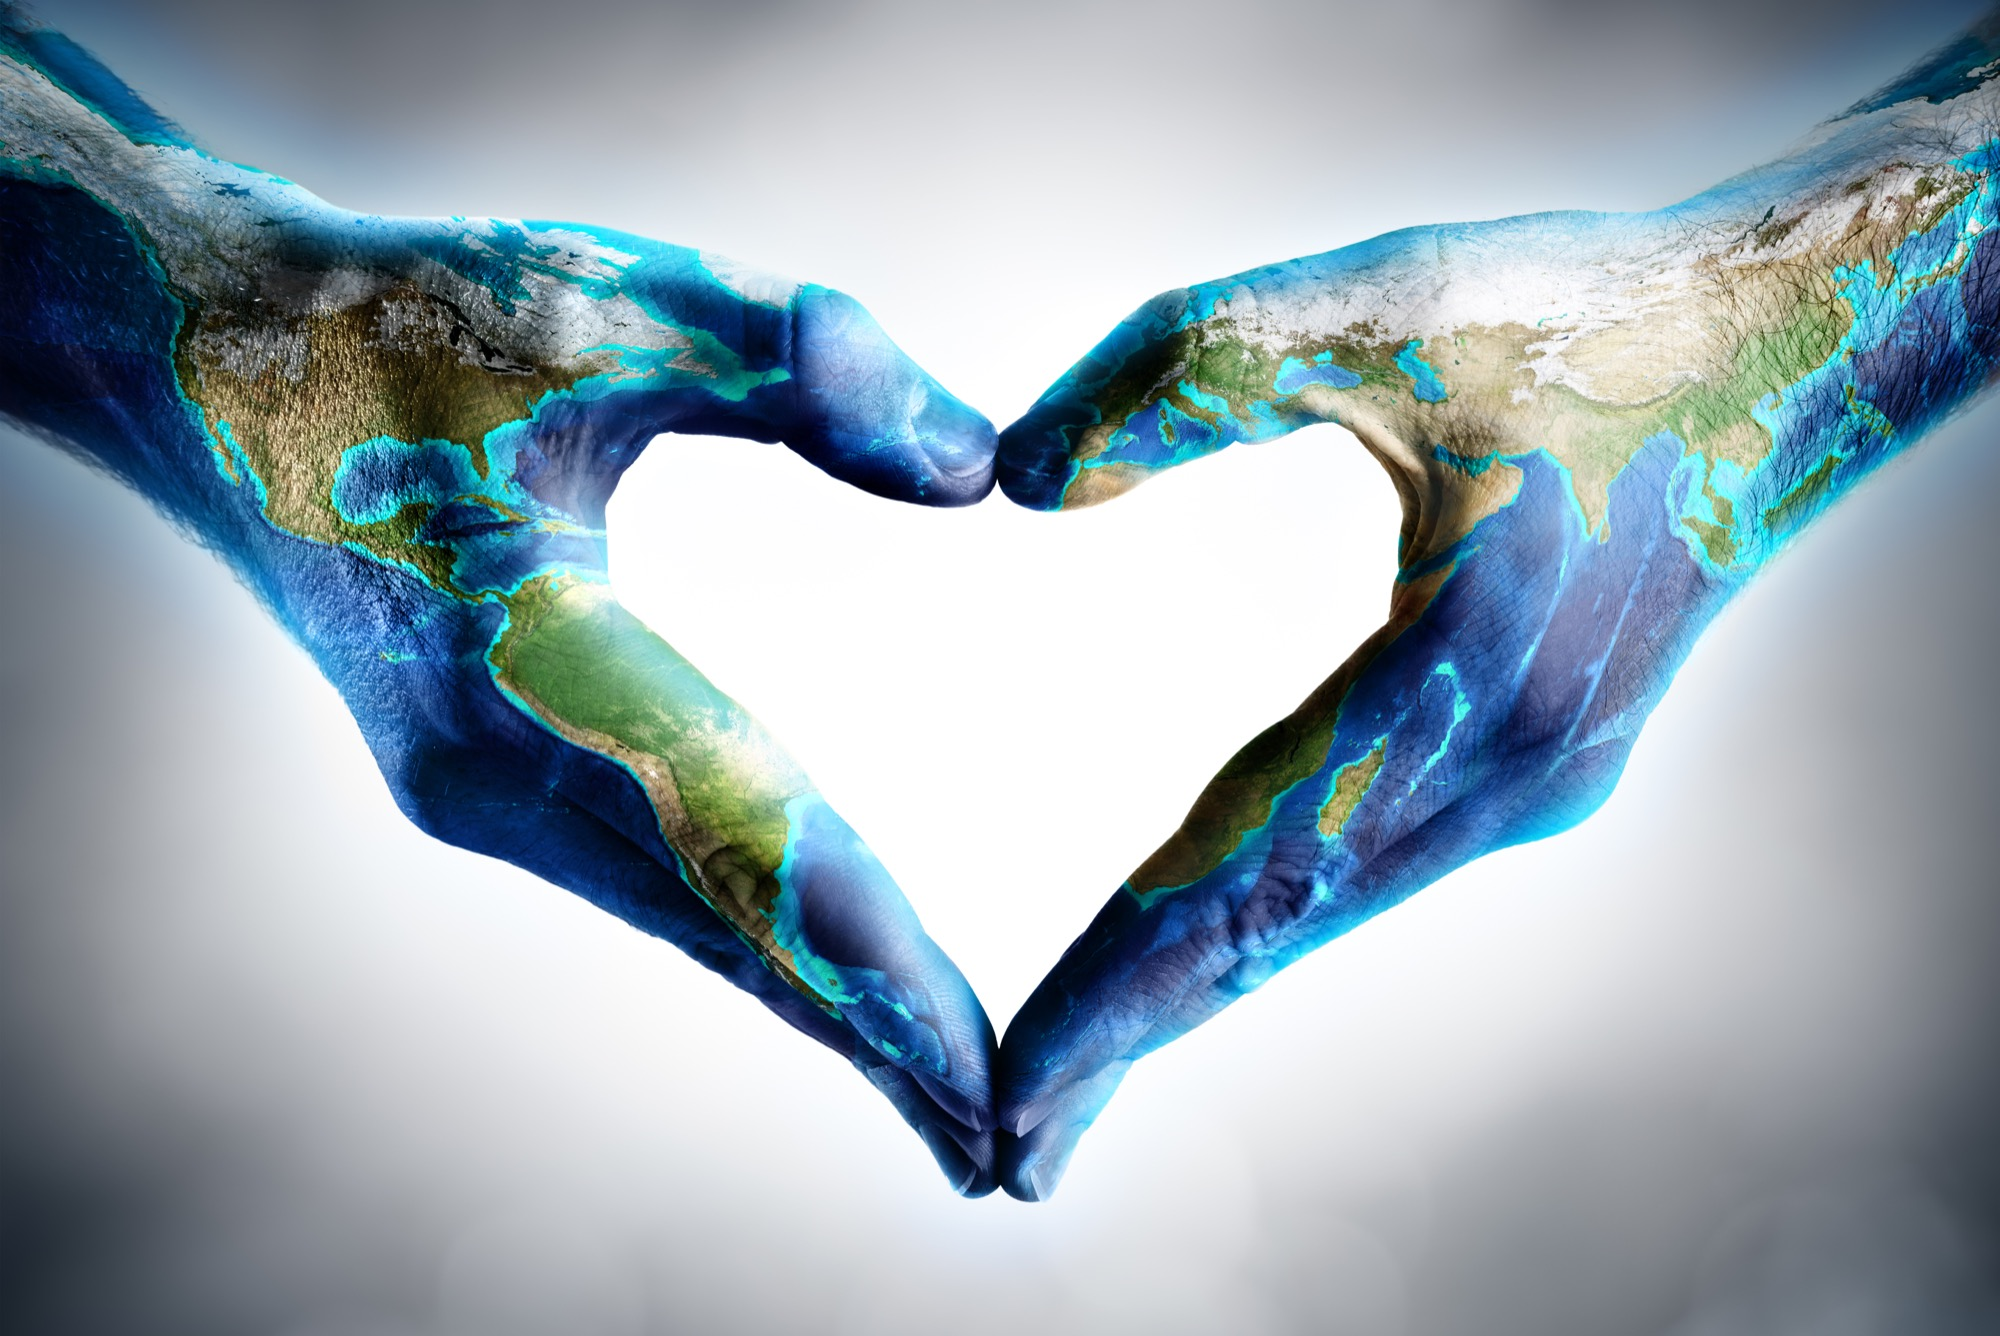 PETAC® has a heart for the planet